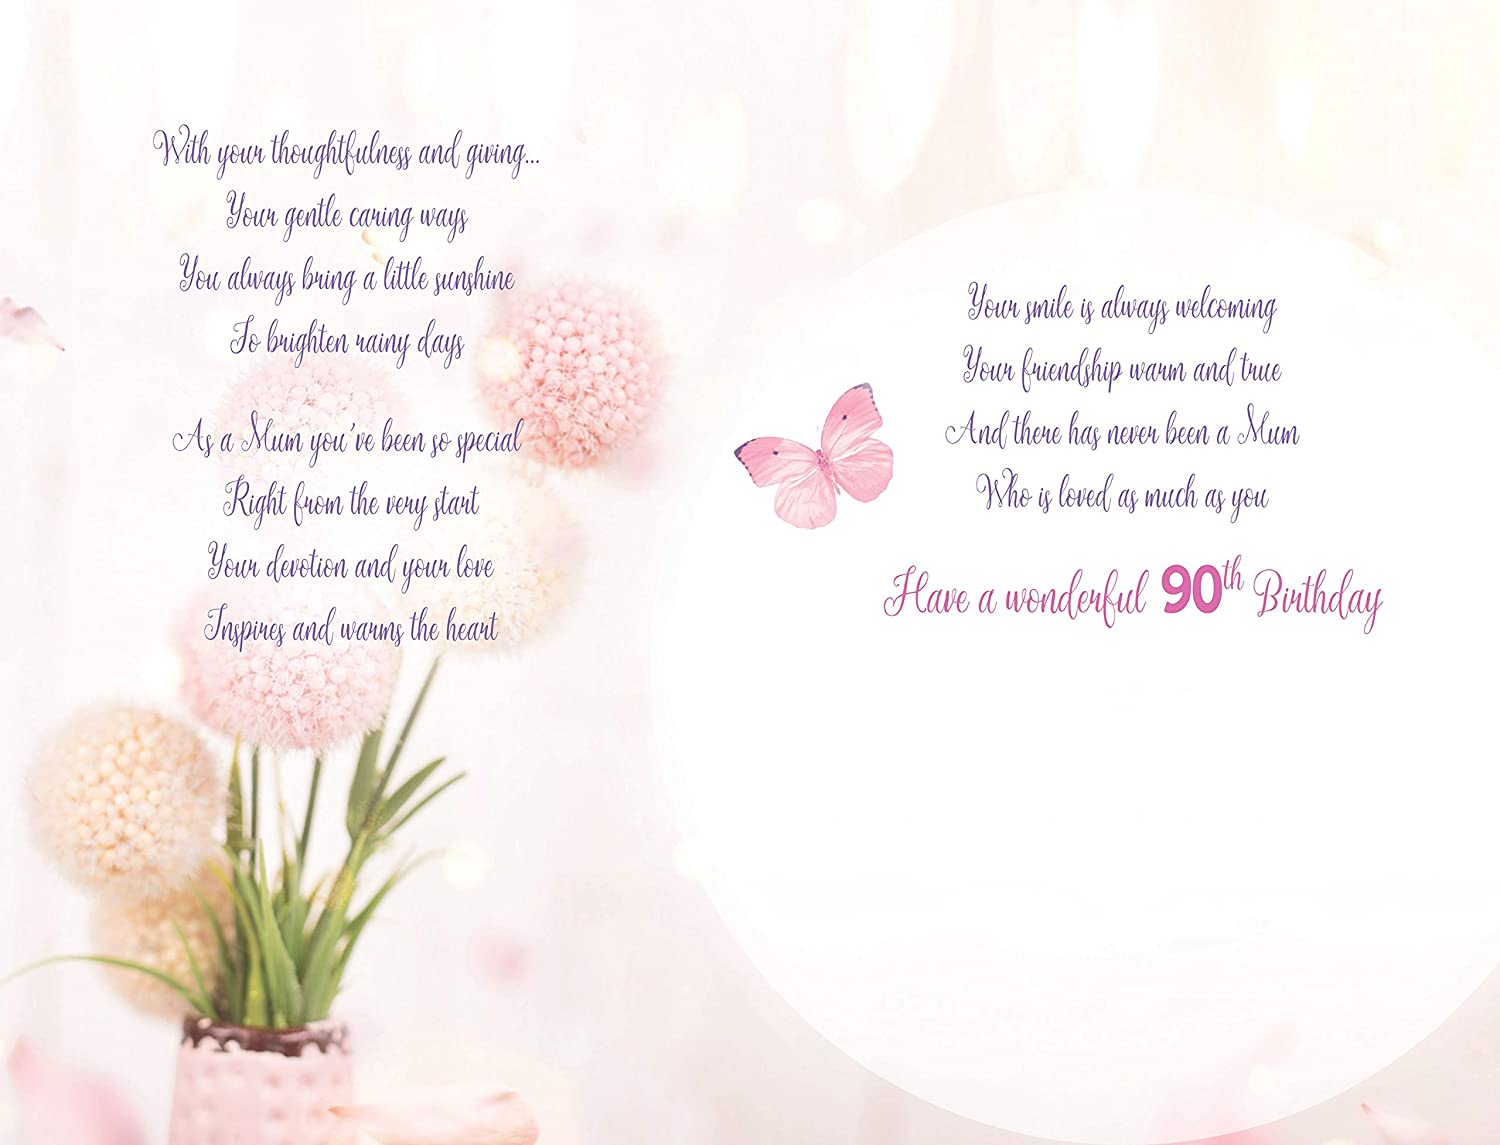 With Love Mum On Your 90th Birthday Card Lovely Verse